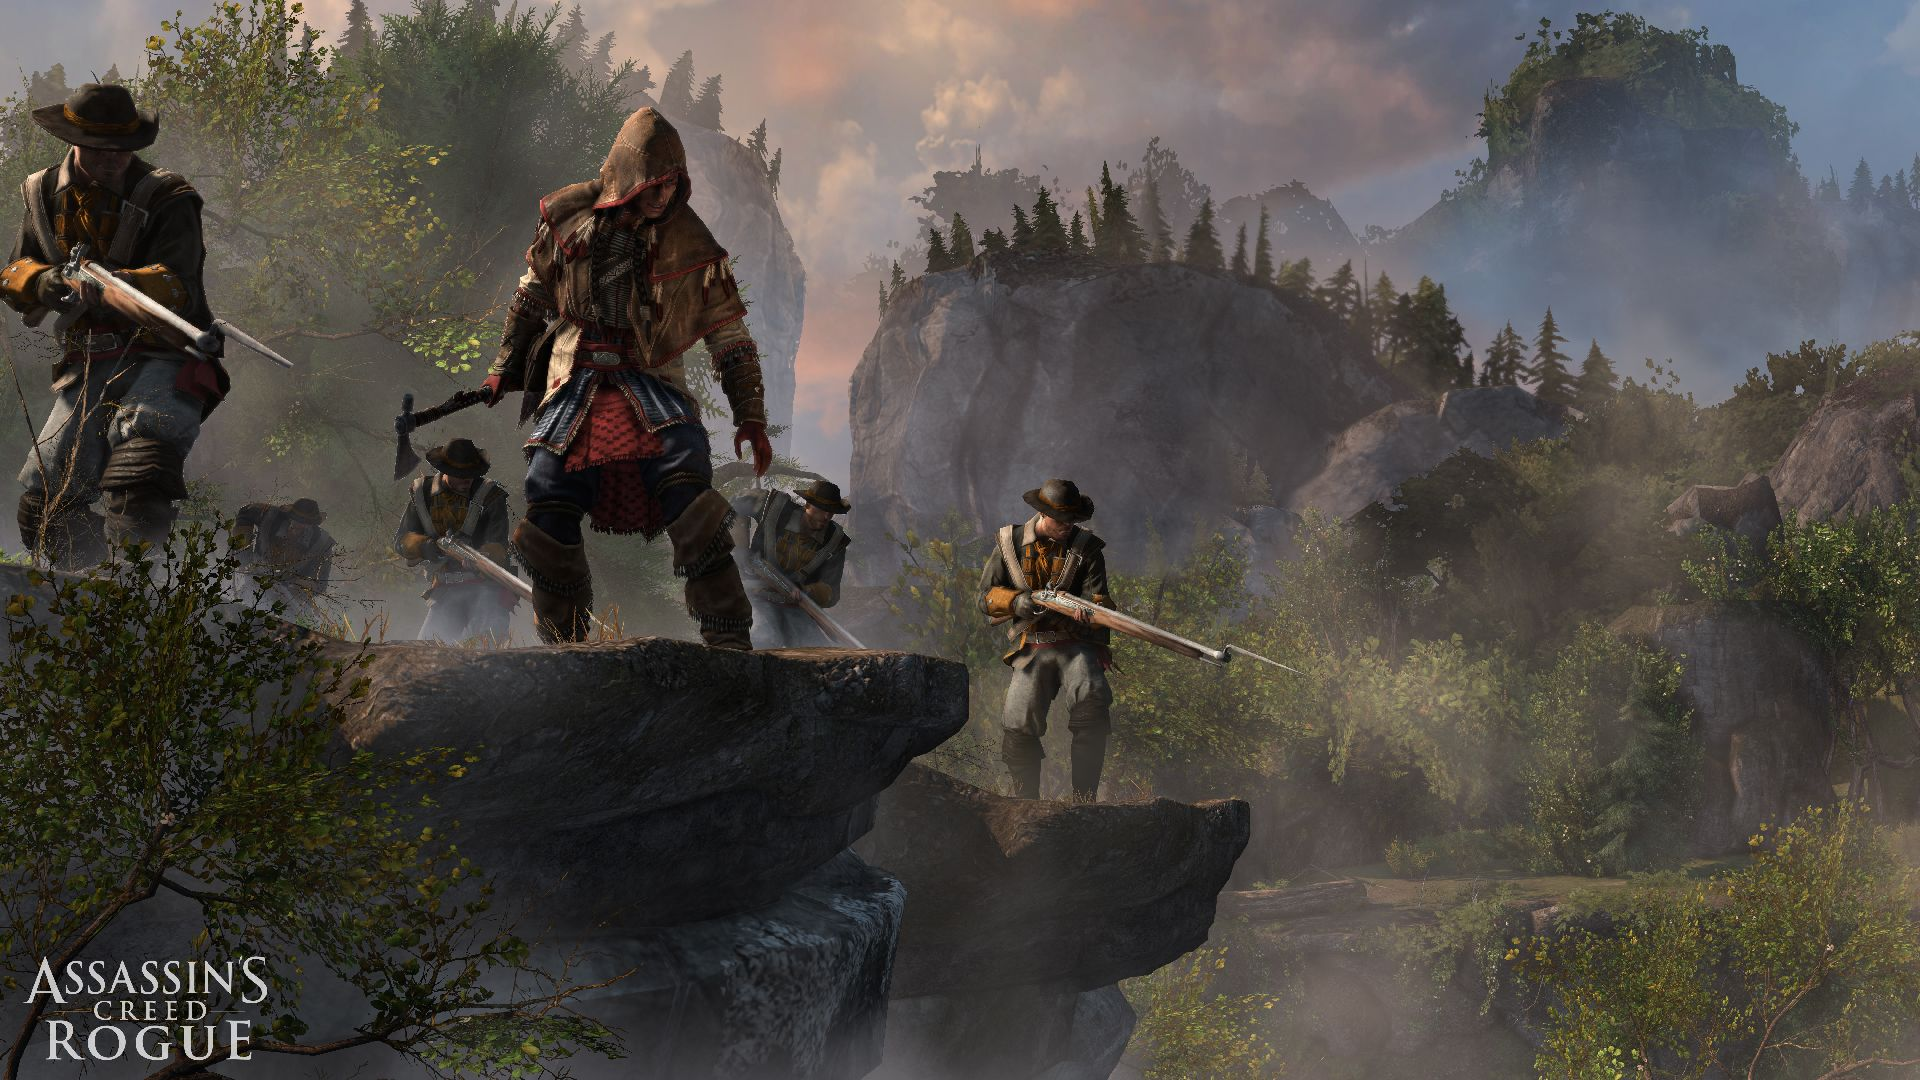 Assassins creed games free online - Assassin S Creed Rogue Review Rogue Rage